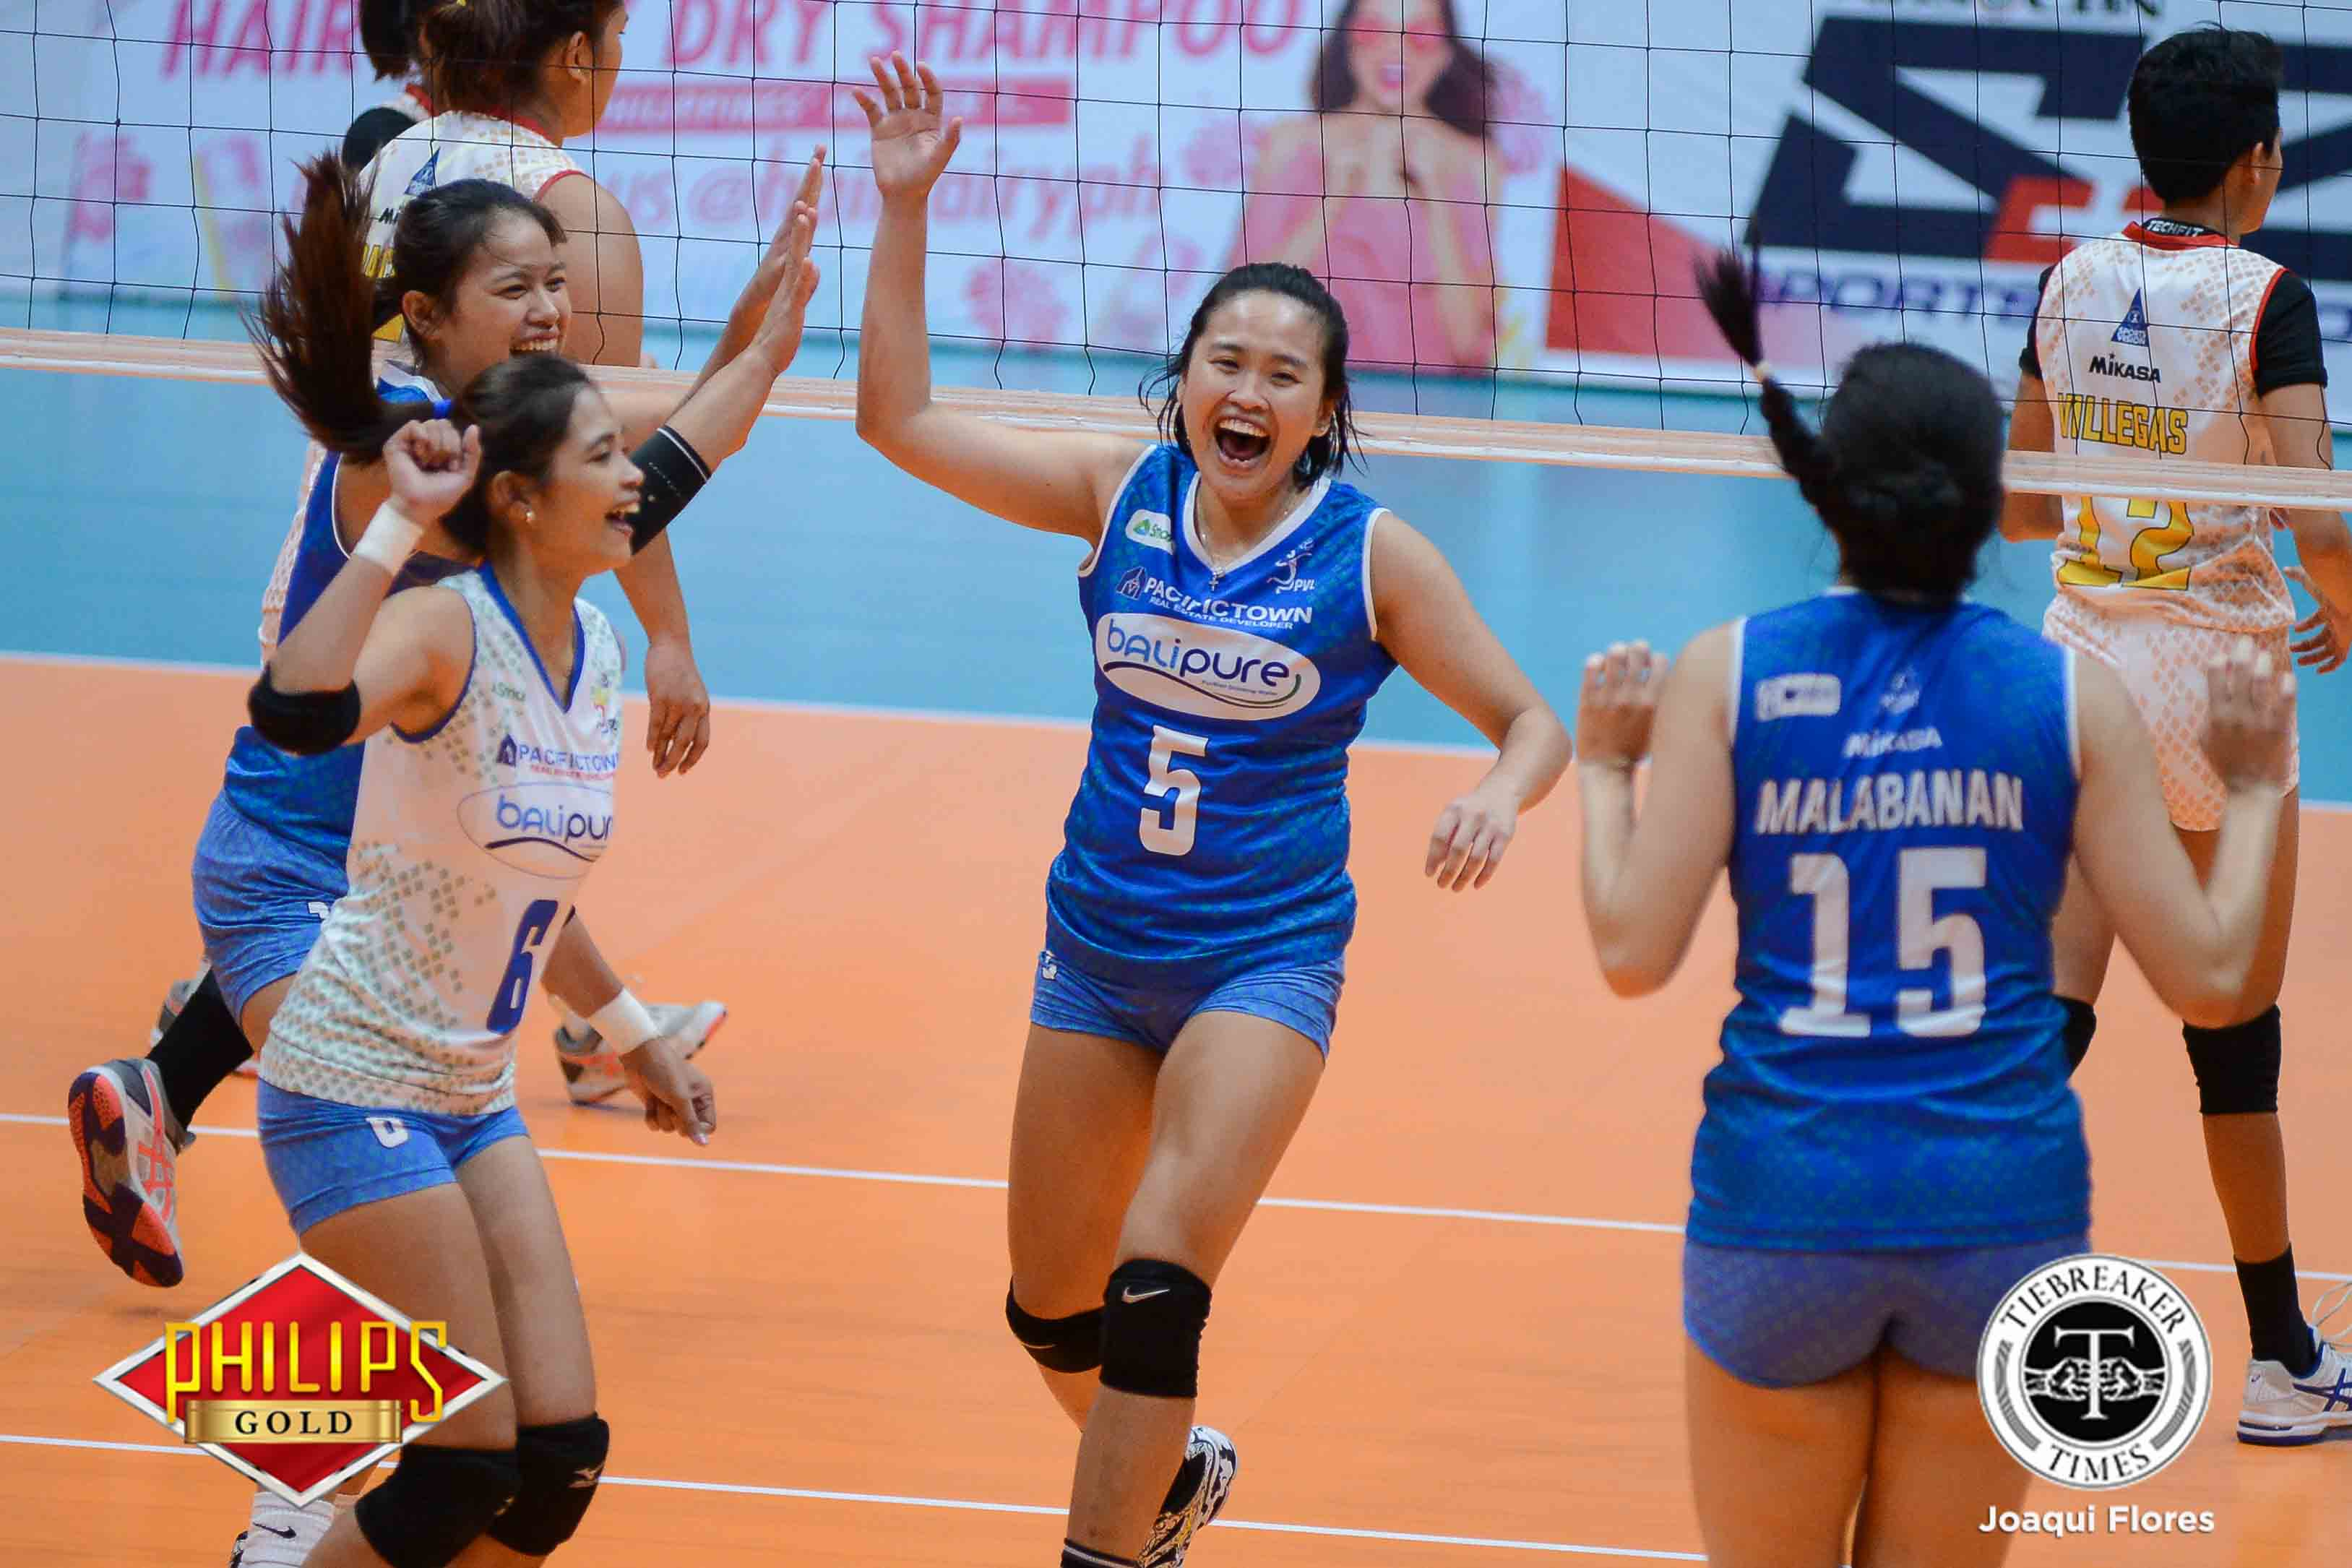 Philippine Sports News - Tiebreaker Times Soltones, Bali Pure outlast Power Smashers for first win News PVL Volleyball  Roger Gorayeb Risa Sato Regine Arocha Power Smashers Pocari Sweat Lady Warriors Nes Pamilar Mary Pacres Lizlee Ann Gata-Pantone Jasmine Nabor Grethcel Soltones 2017 PVL Women's Open Conference 2017 PVL Season